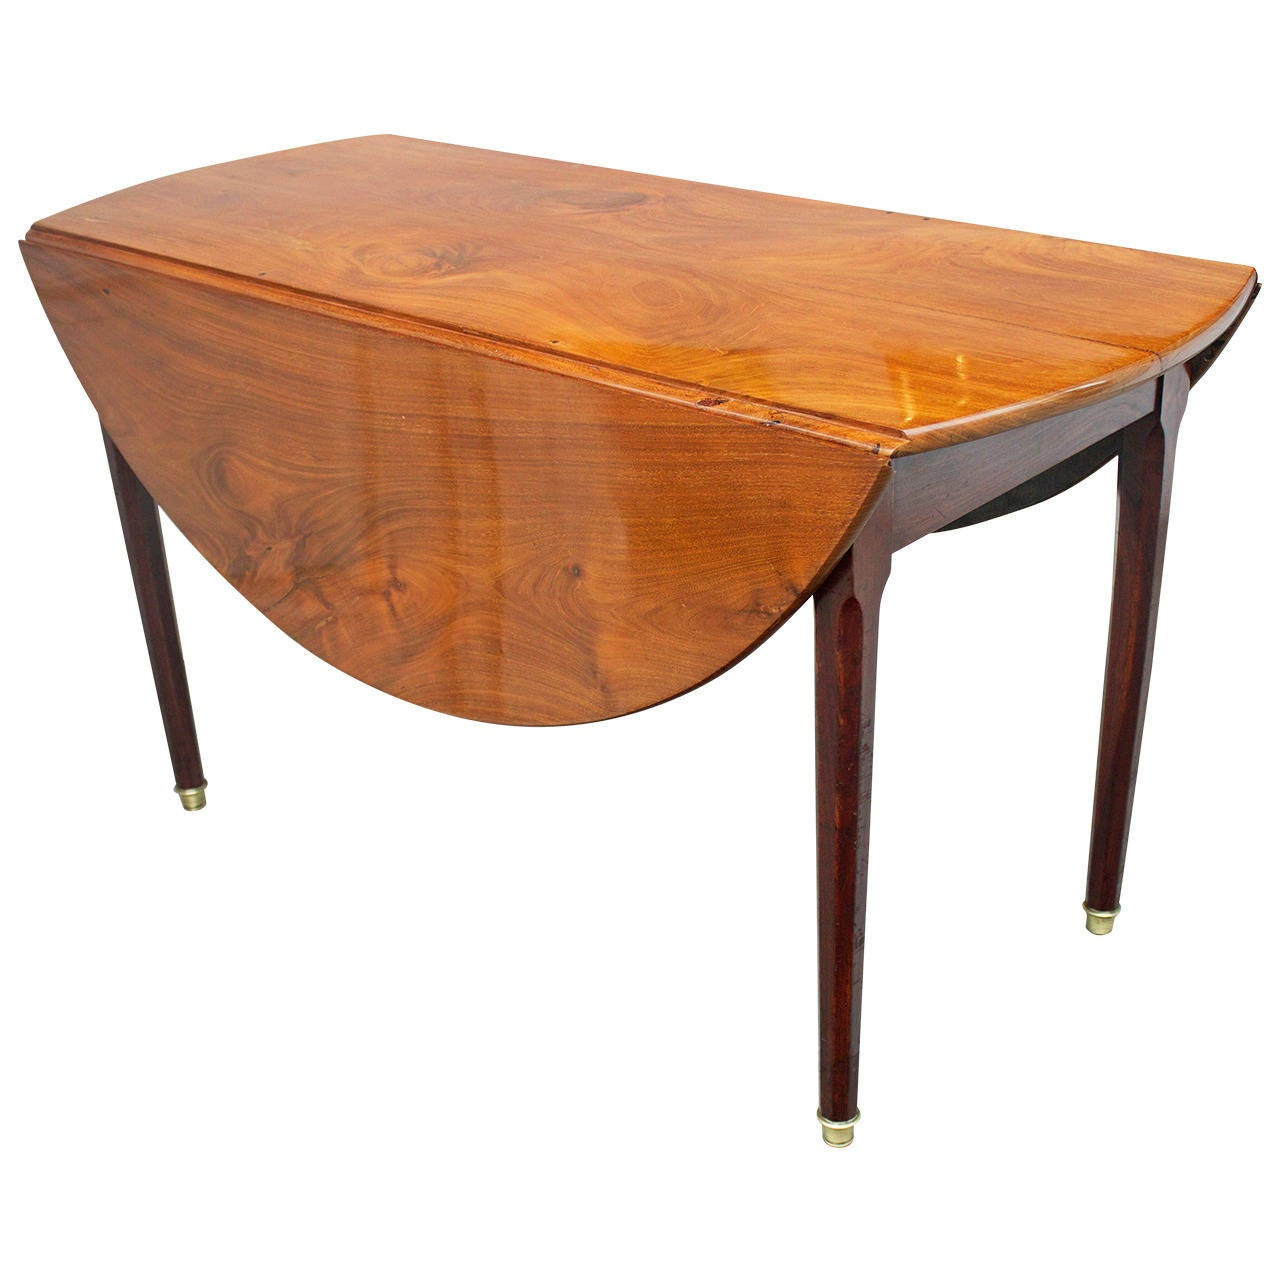 19th century french mahogany round drop leaf table for for Round drop leaf dining table